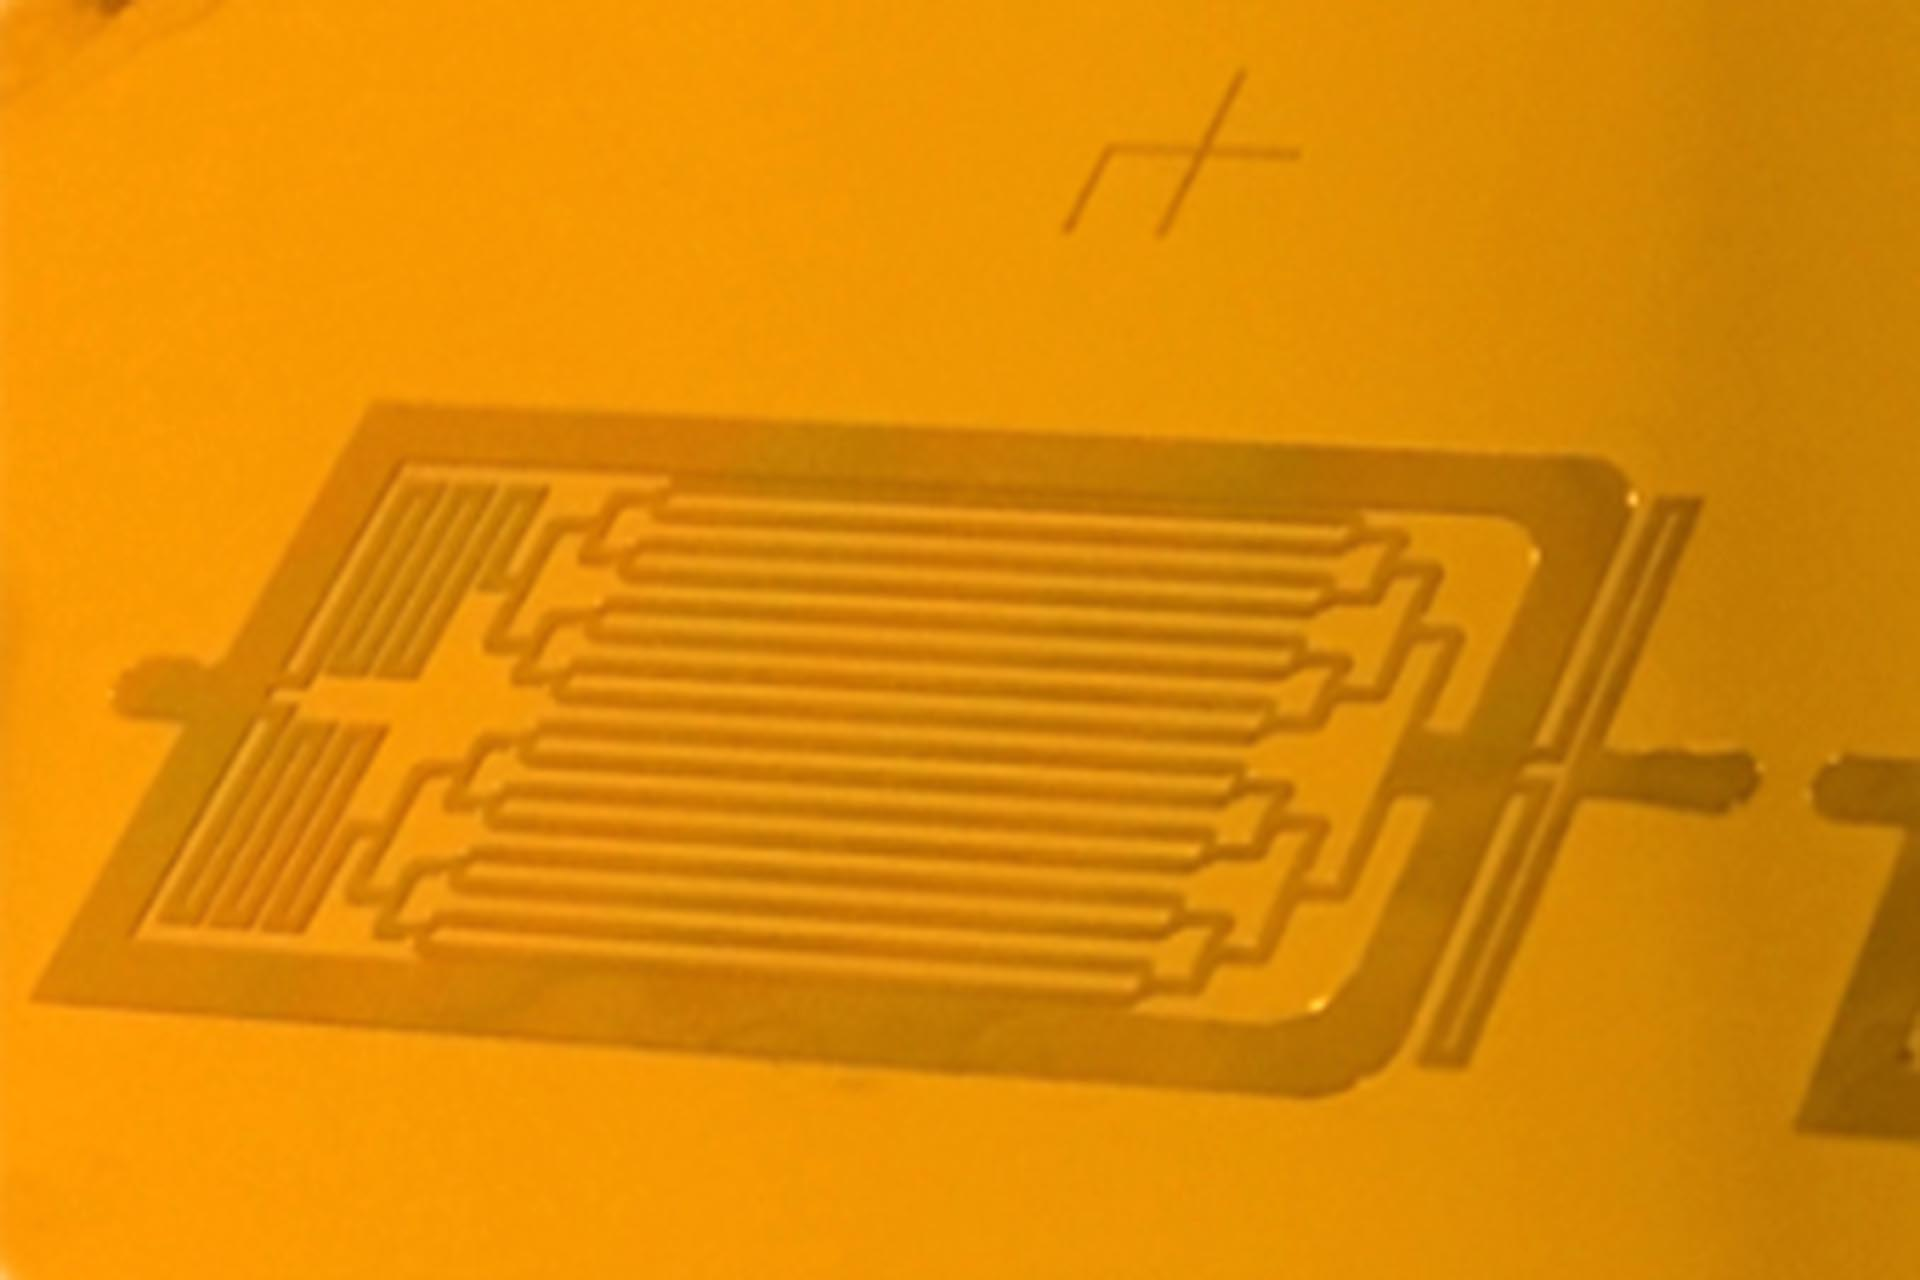 Microfluidics channels in 25 µm of SU-8 fabricated by Maskless Lithography.